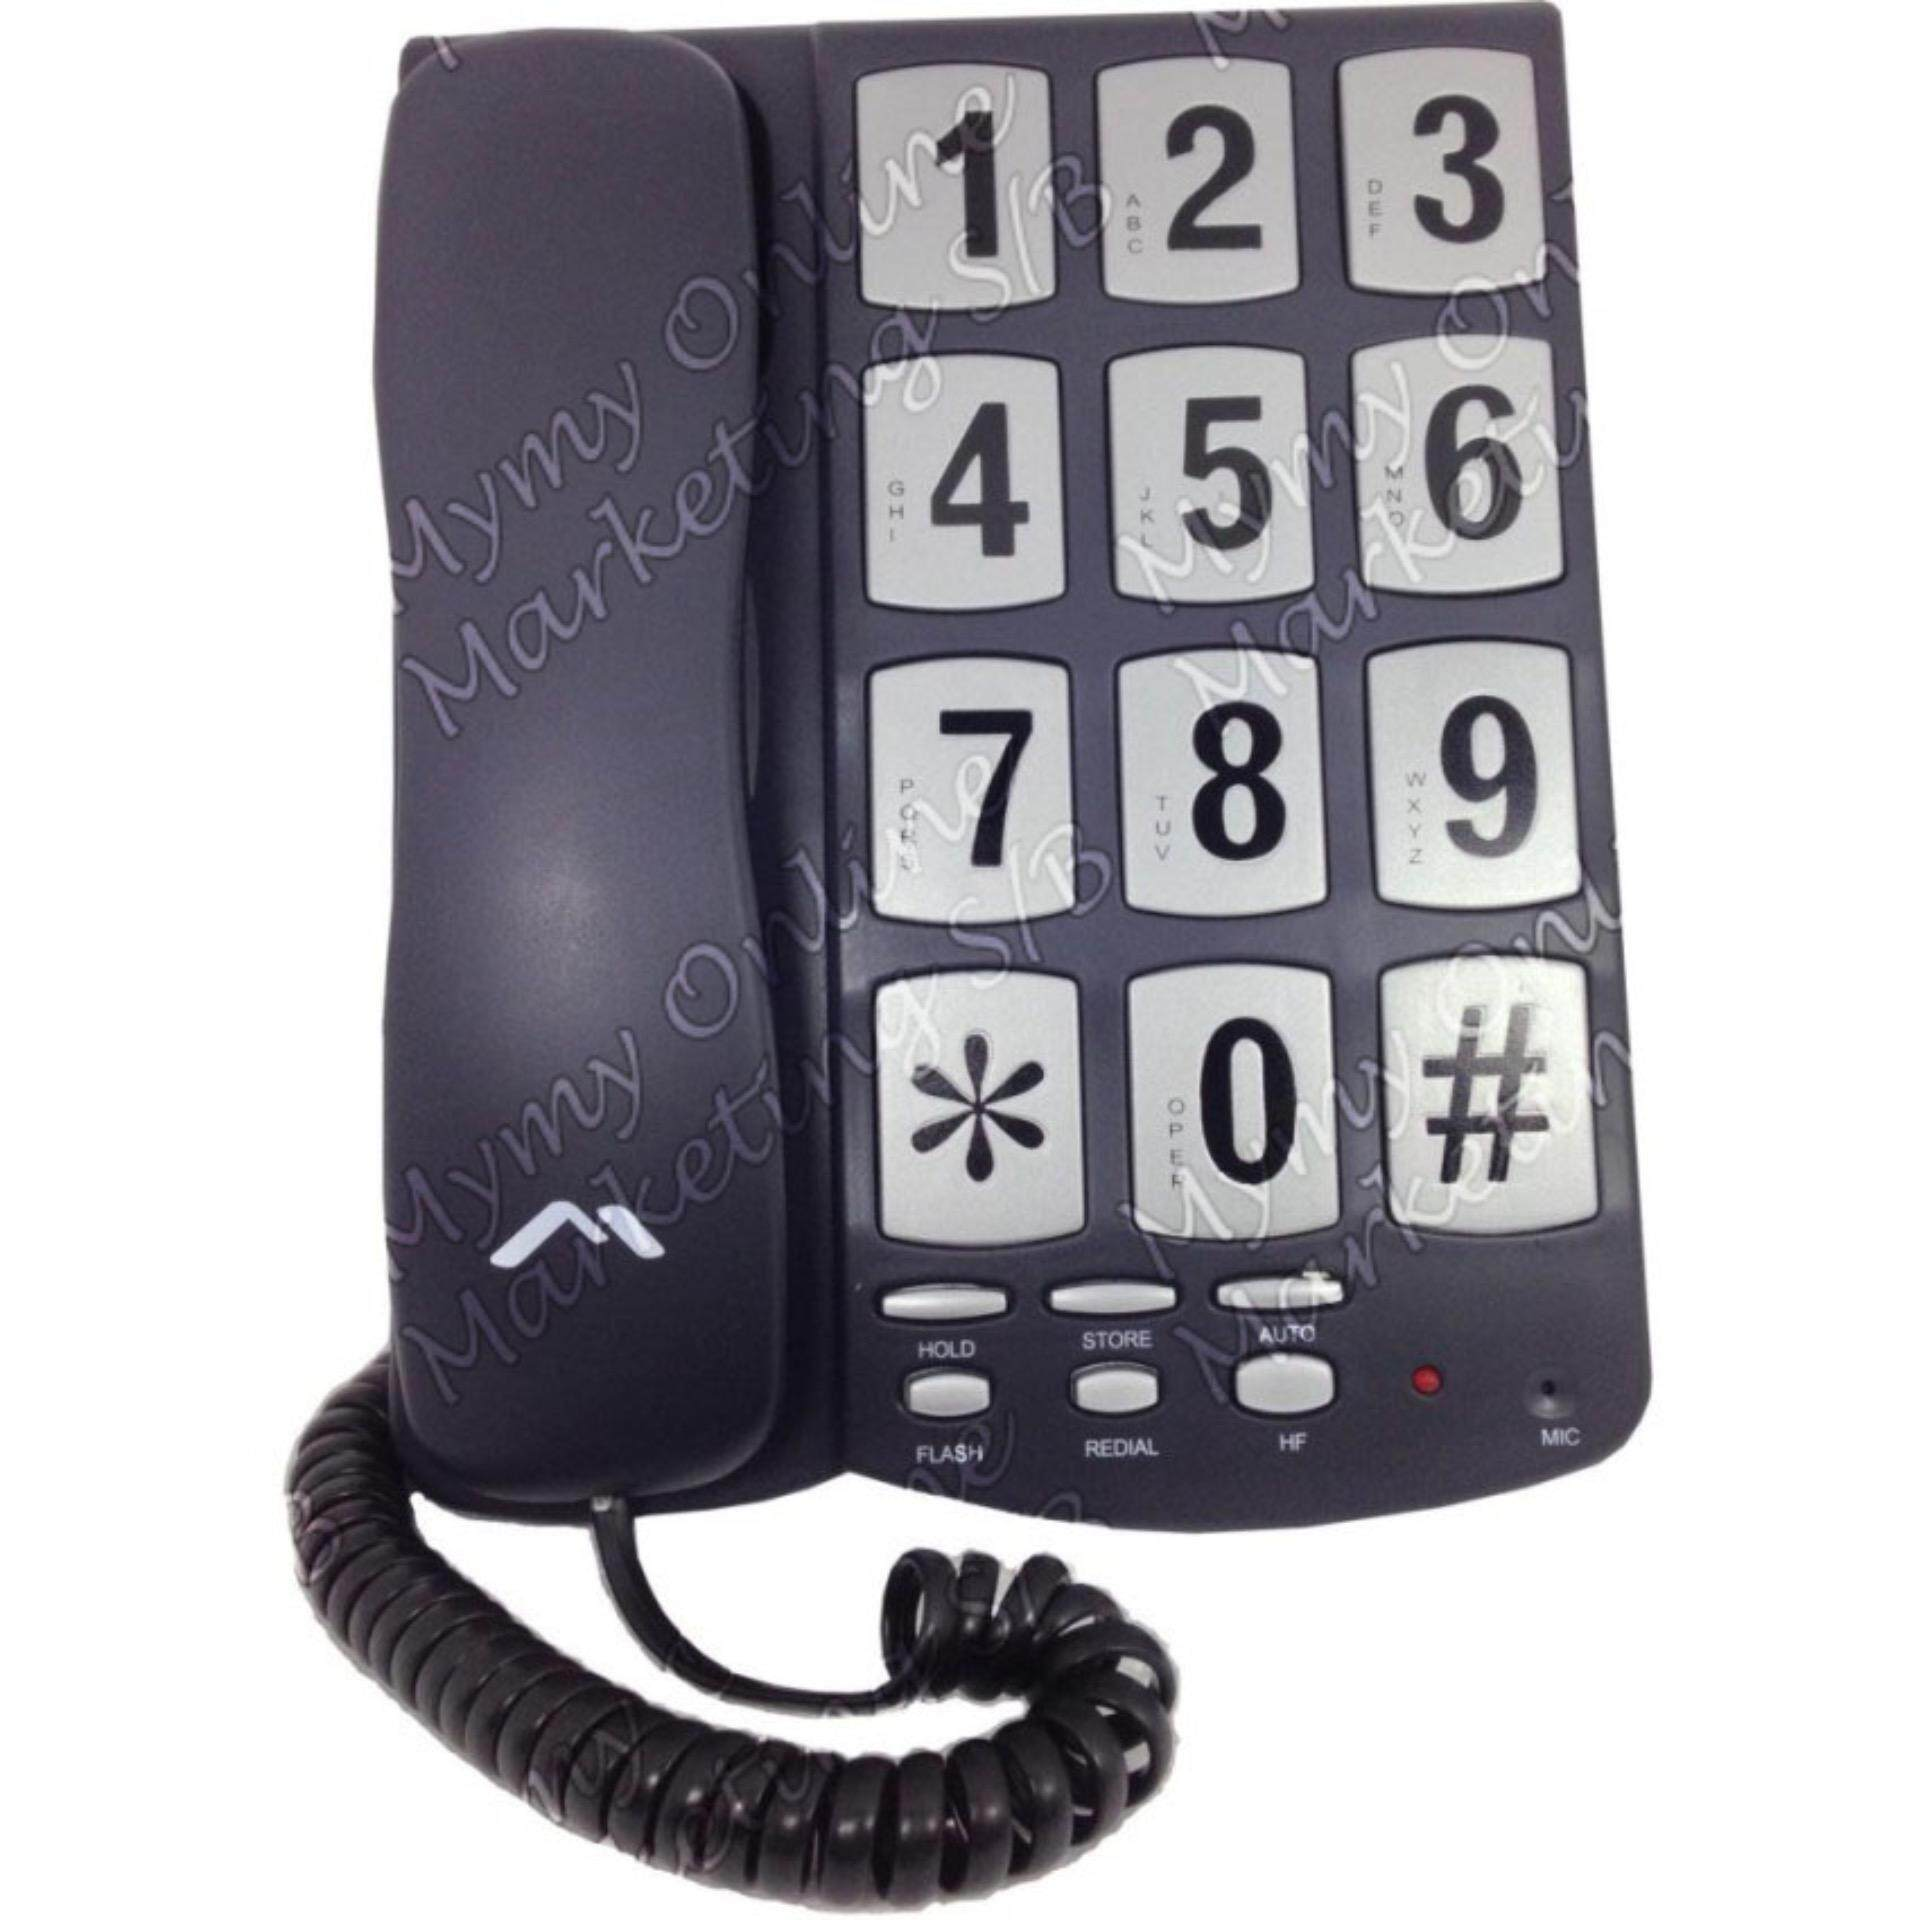 Mitzu Single Line Phone Black MP-315BK